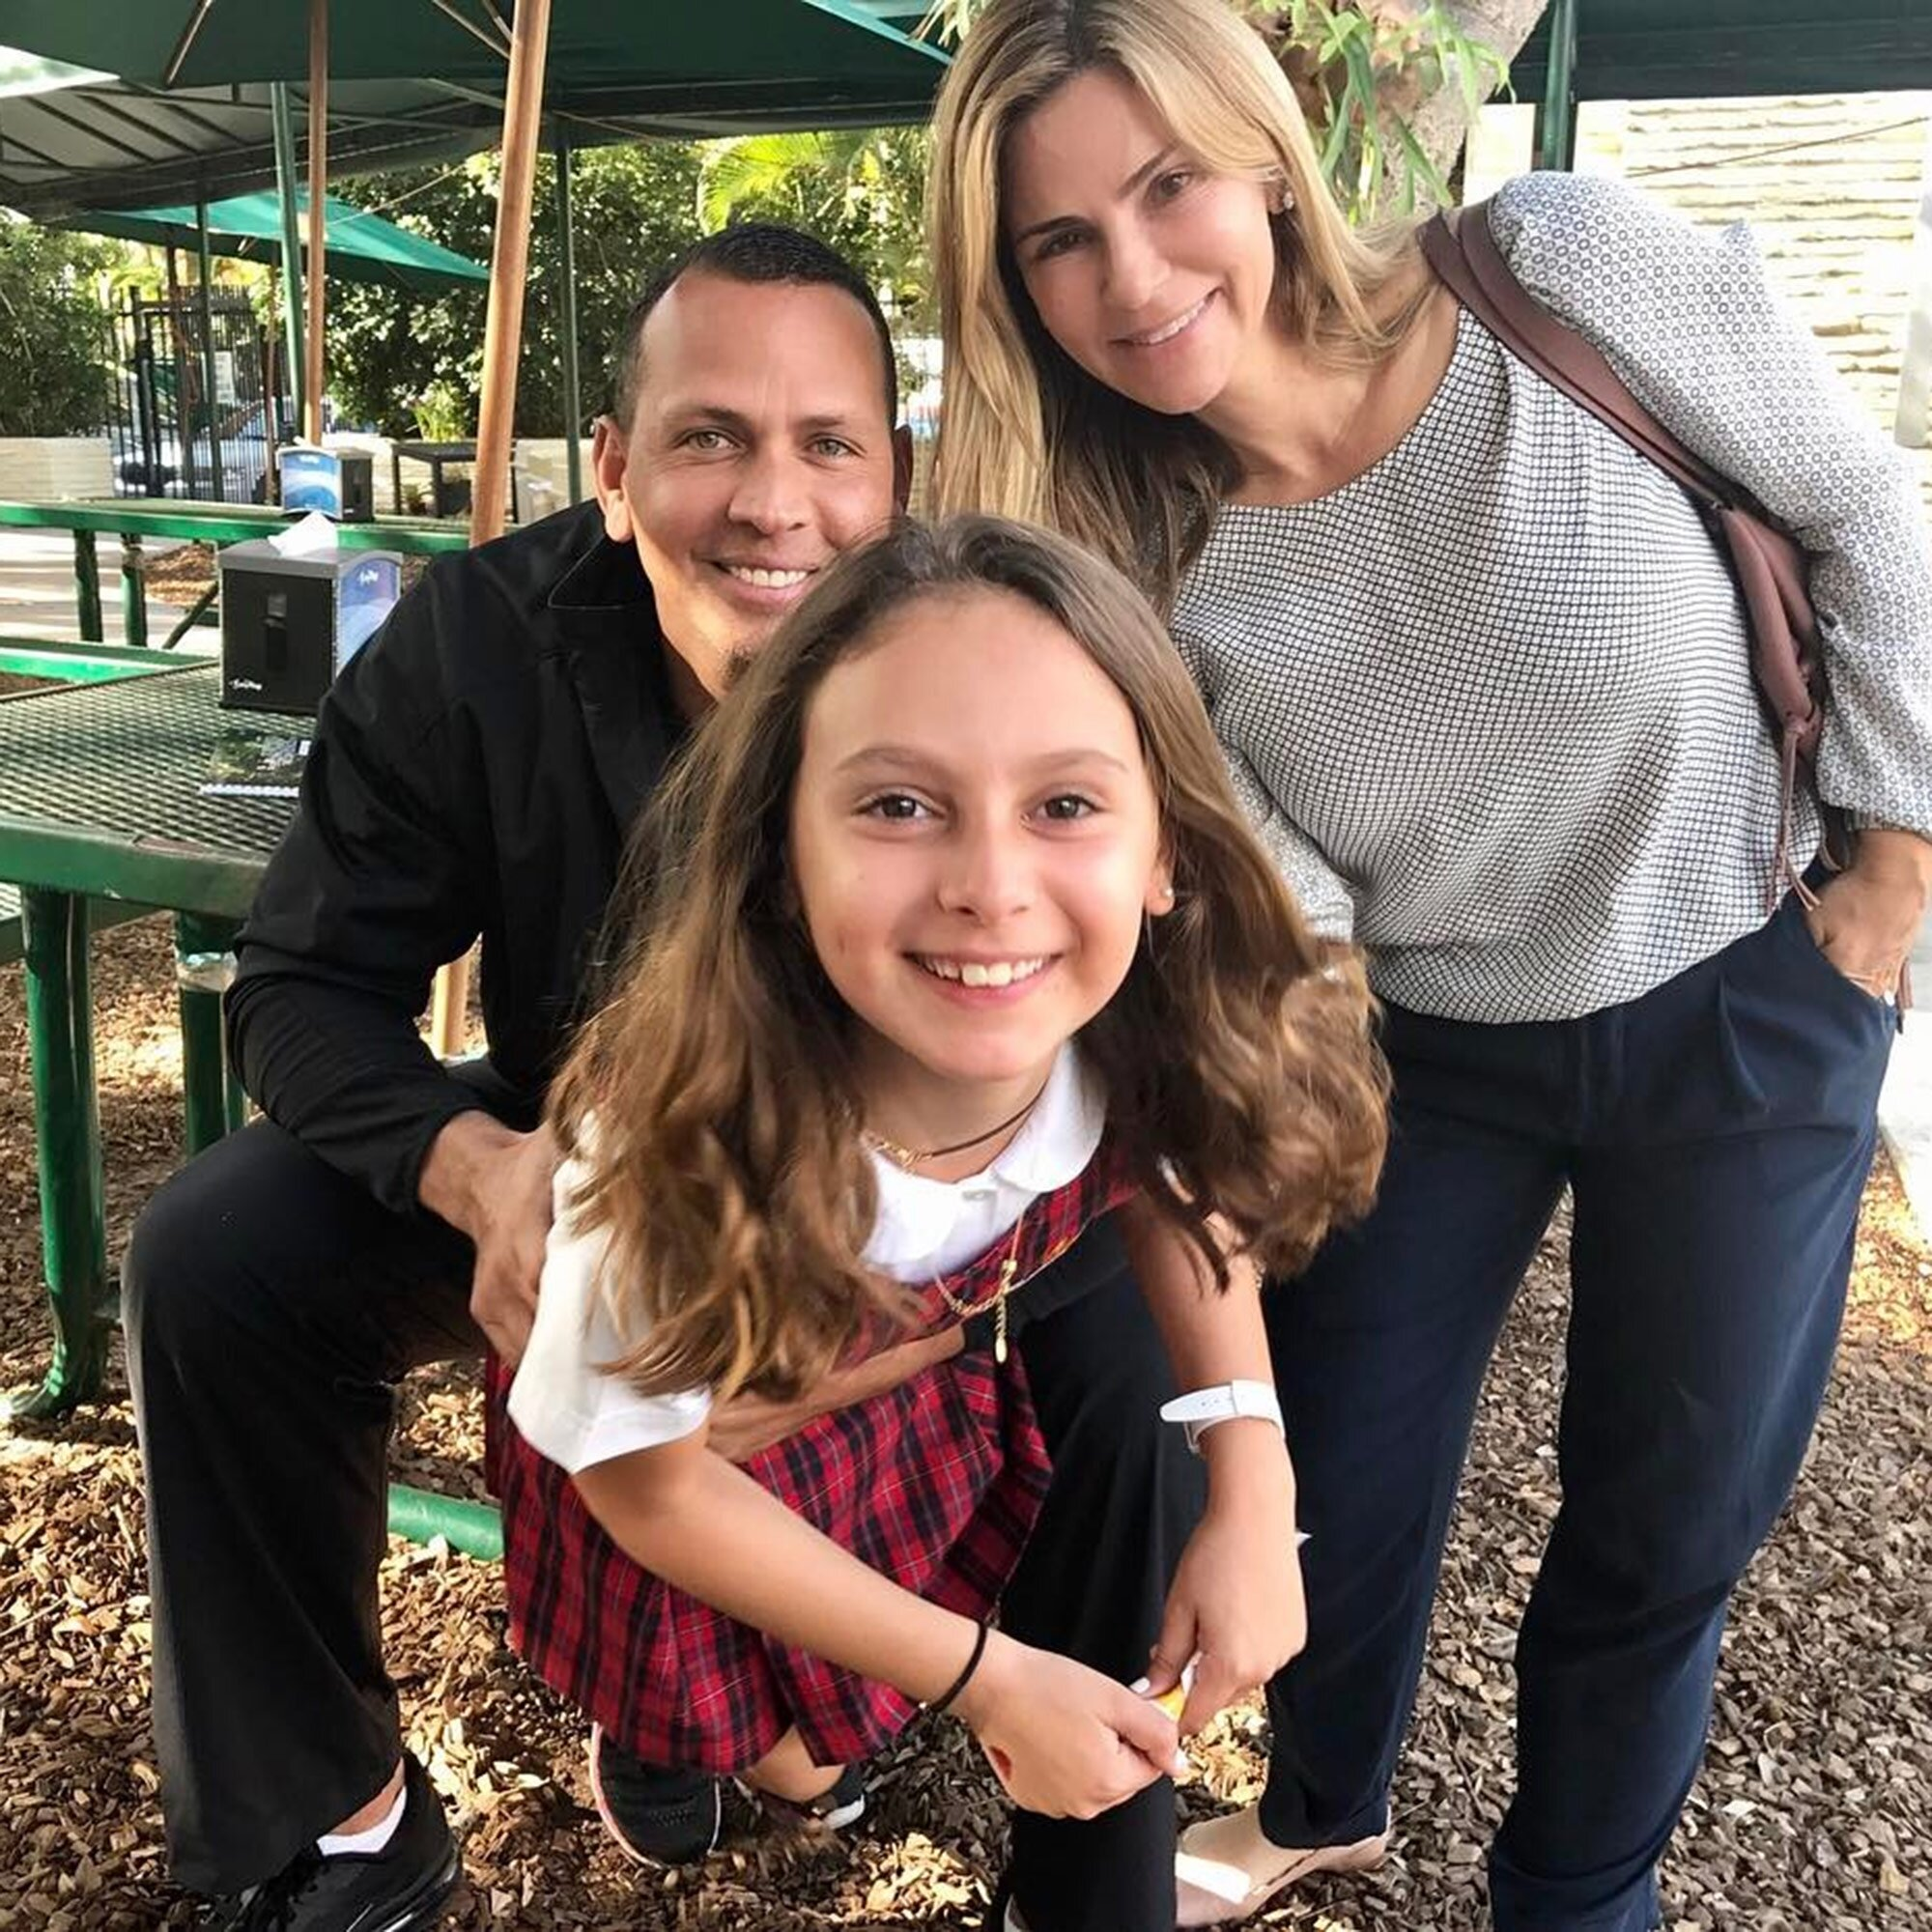 Alex Rodriguez Shares Photo With Daughter Ella And Ex Wife Cynthia